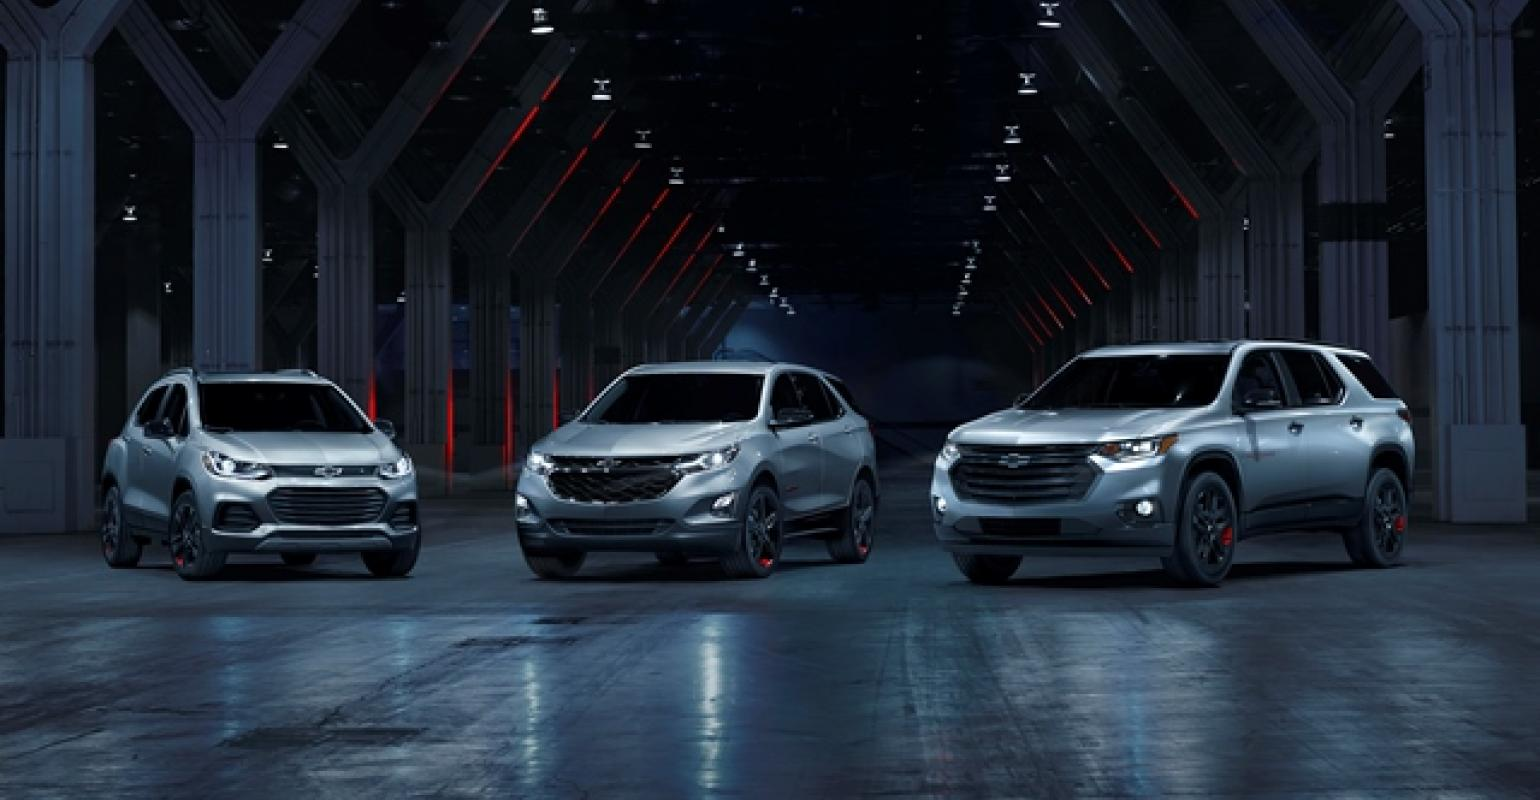 Chevyrsquos Breadandbutter Cuv Lineup Of Compact Trax Left Midsize Equinox And Large Traverse Right In Special